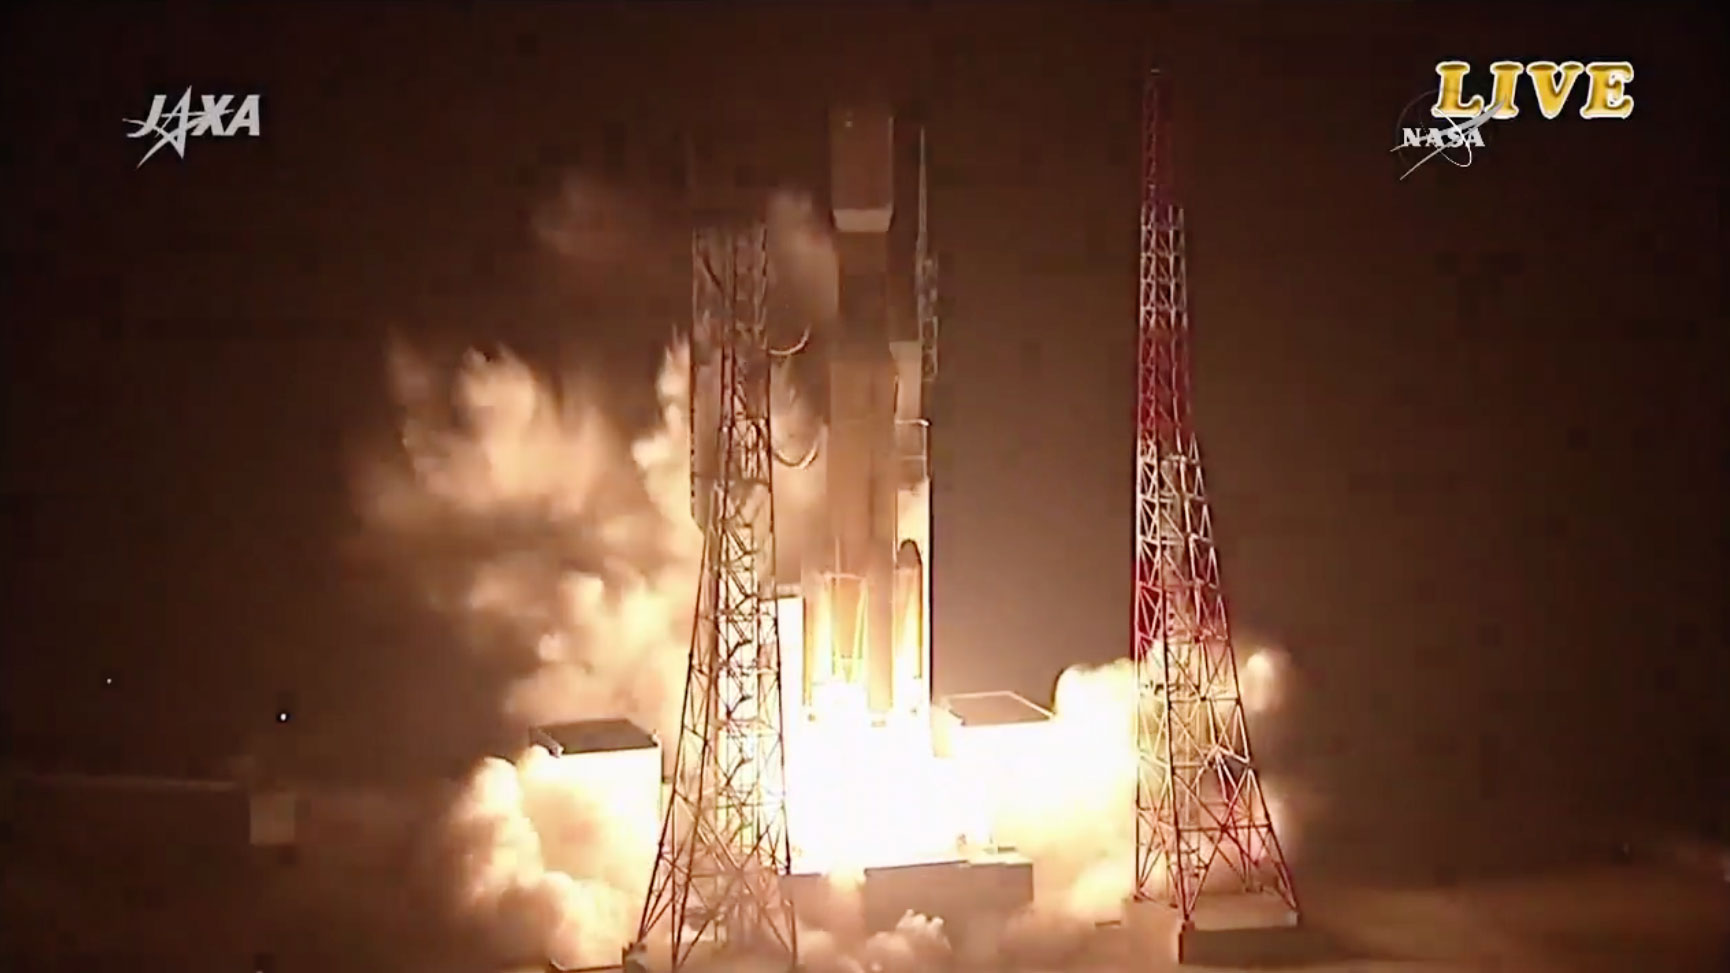 Japan's H-IIB rocket launches on time